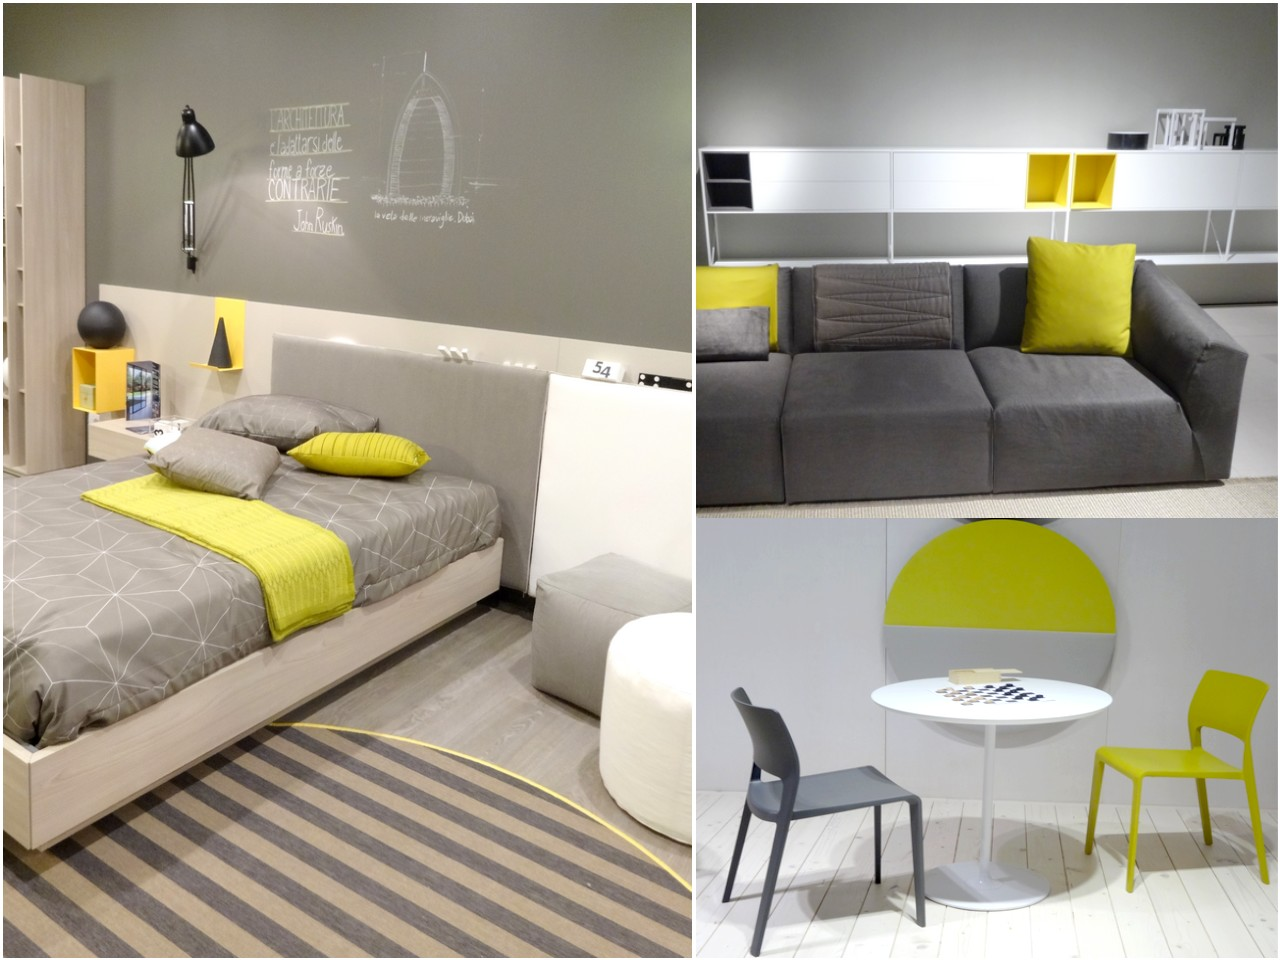 Tendencias De Decoracion De Interiores 2016 Tendencias Decoración 2015 2016 Milán Siempre Sorprende